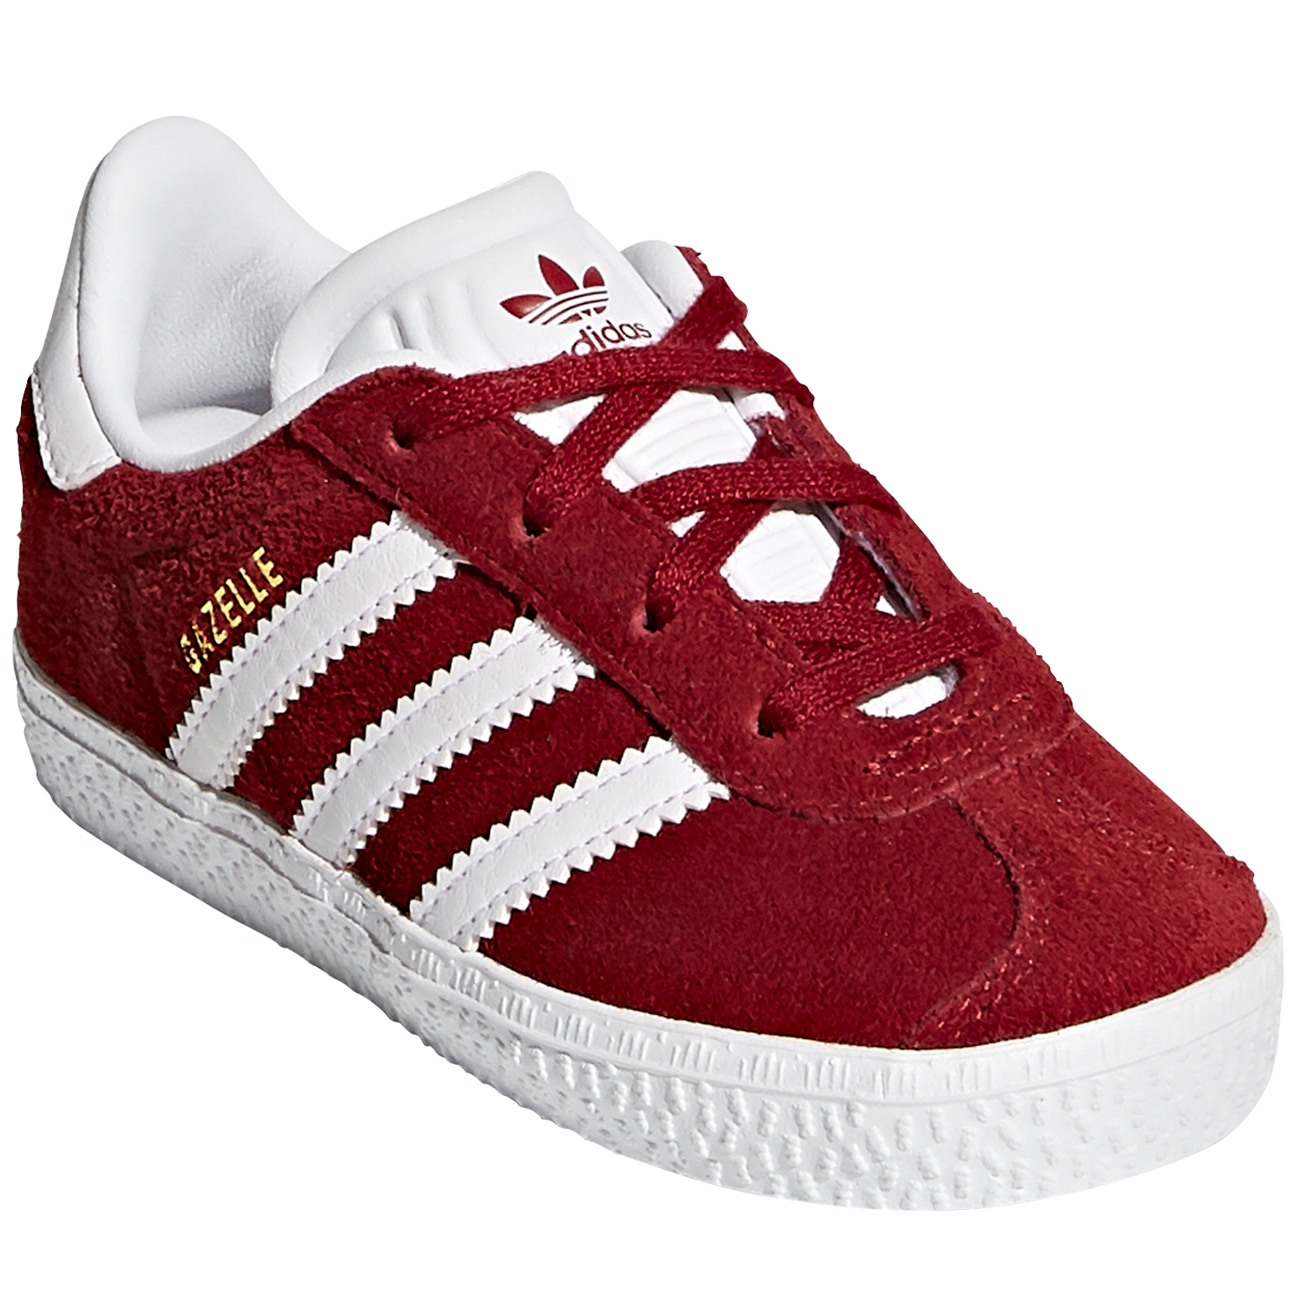 adidas gazelle indoor bordeaux